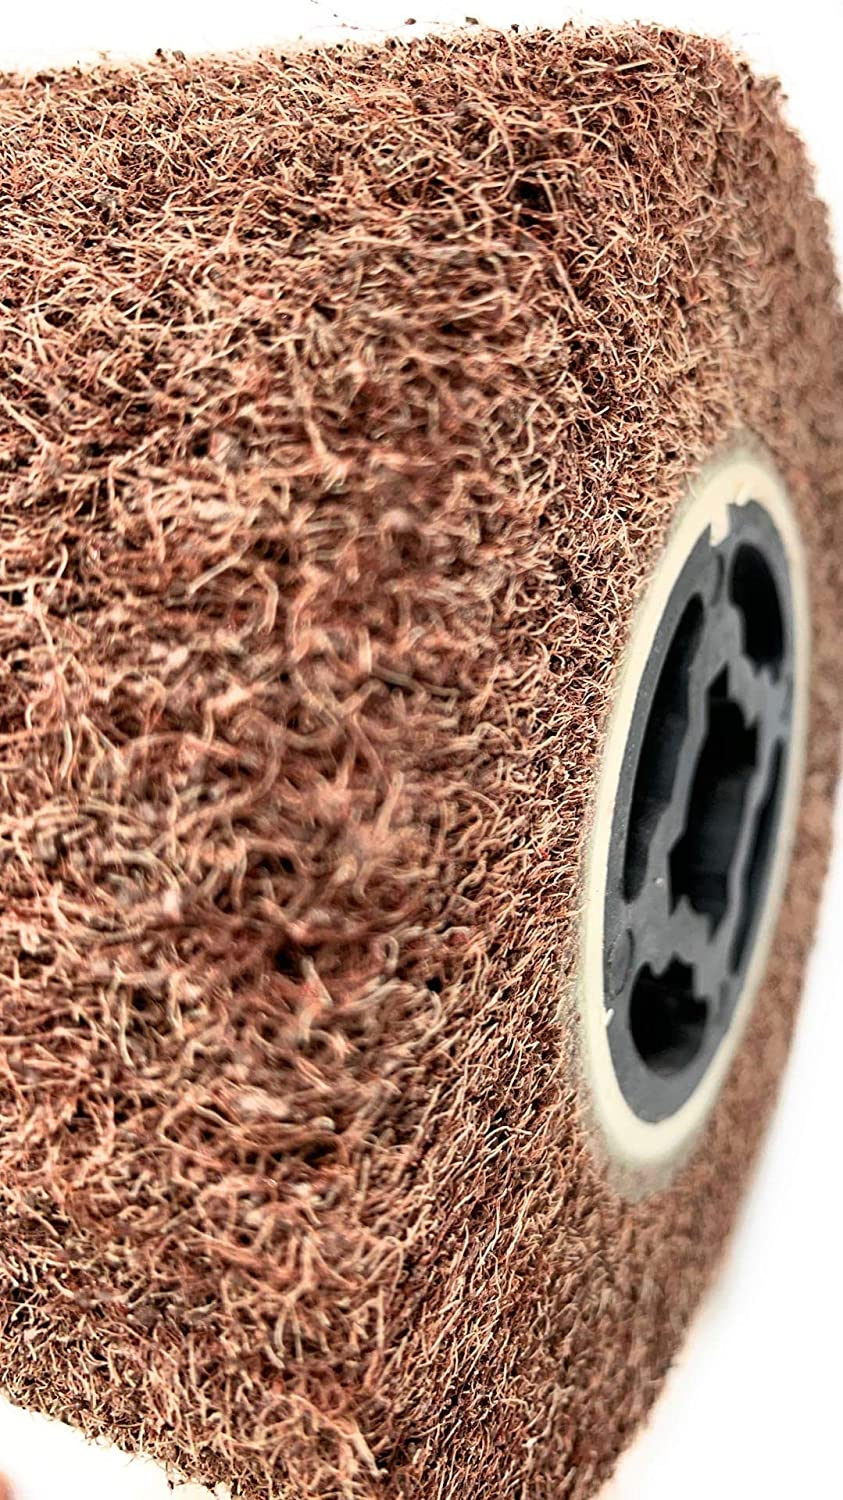 Copper,Metal 120x100x19mm Signi Non Woven Wire Abrasive Drawing Polishing Burnishing Wheel Flap Brush for Surface Treatment Stainless Steel Aluminum 80 Grit